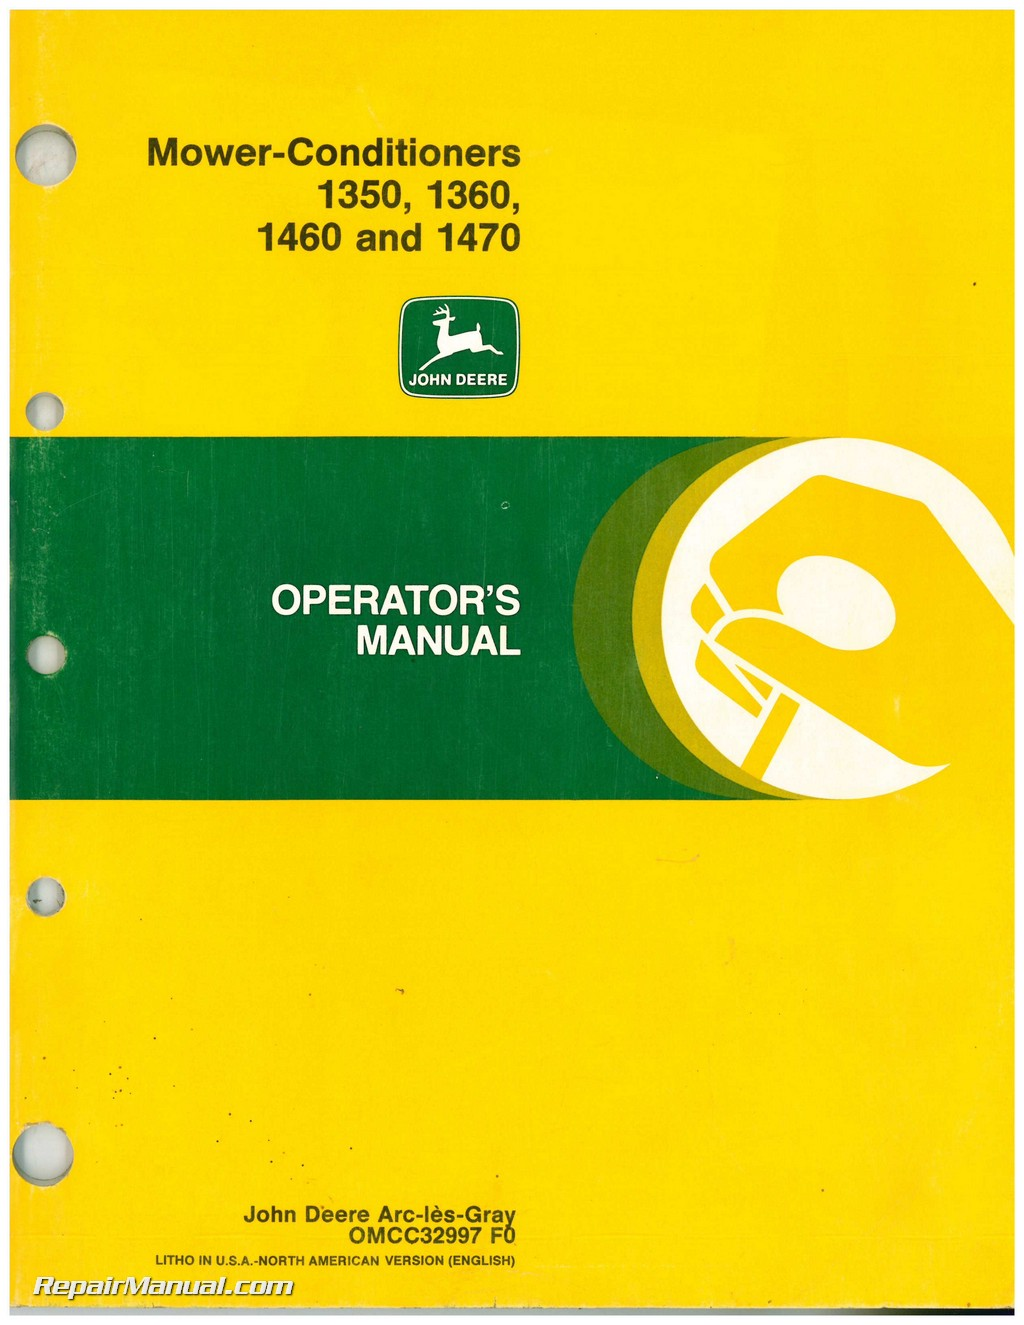 john deere 1350 1360 1460 1470 mower conditioner operators manual rh repairmanual com service manual john deere 70 service manual john deere p218g